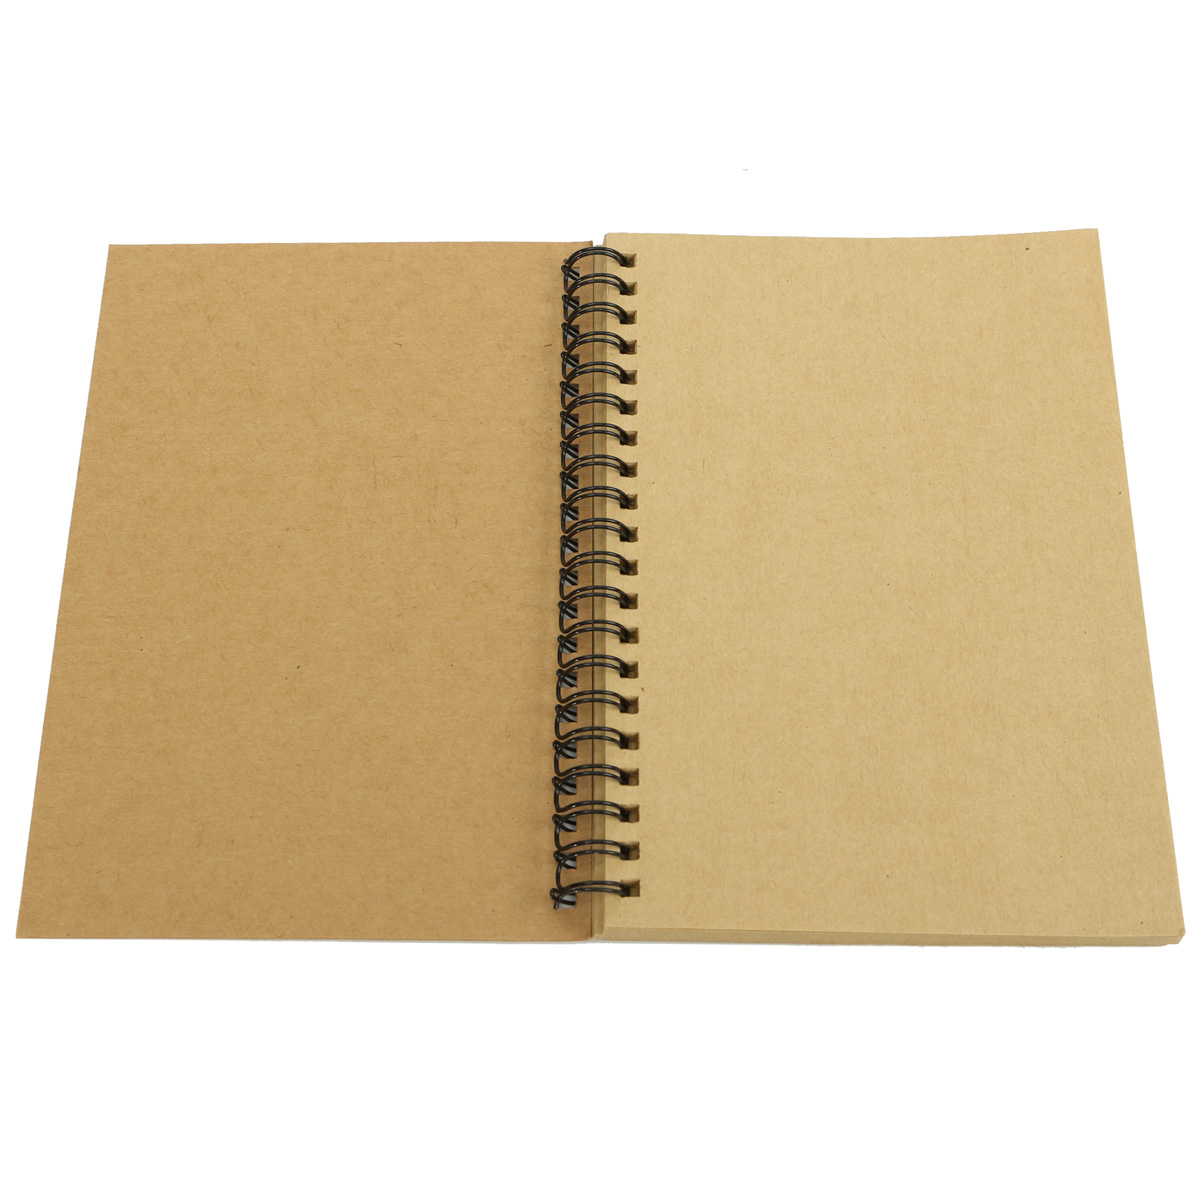 spiral binding thesis london We offer a variety of attractive binding options, including cerlox, coil, and  bookbinding we can also add tabs and inserts plus — we can fold it cut it  collate.